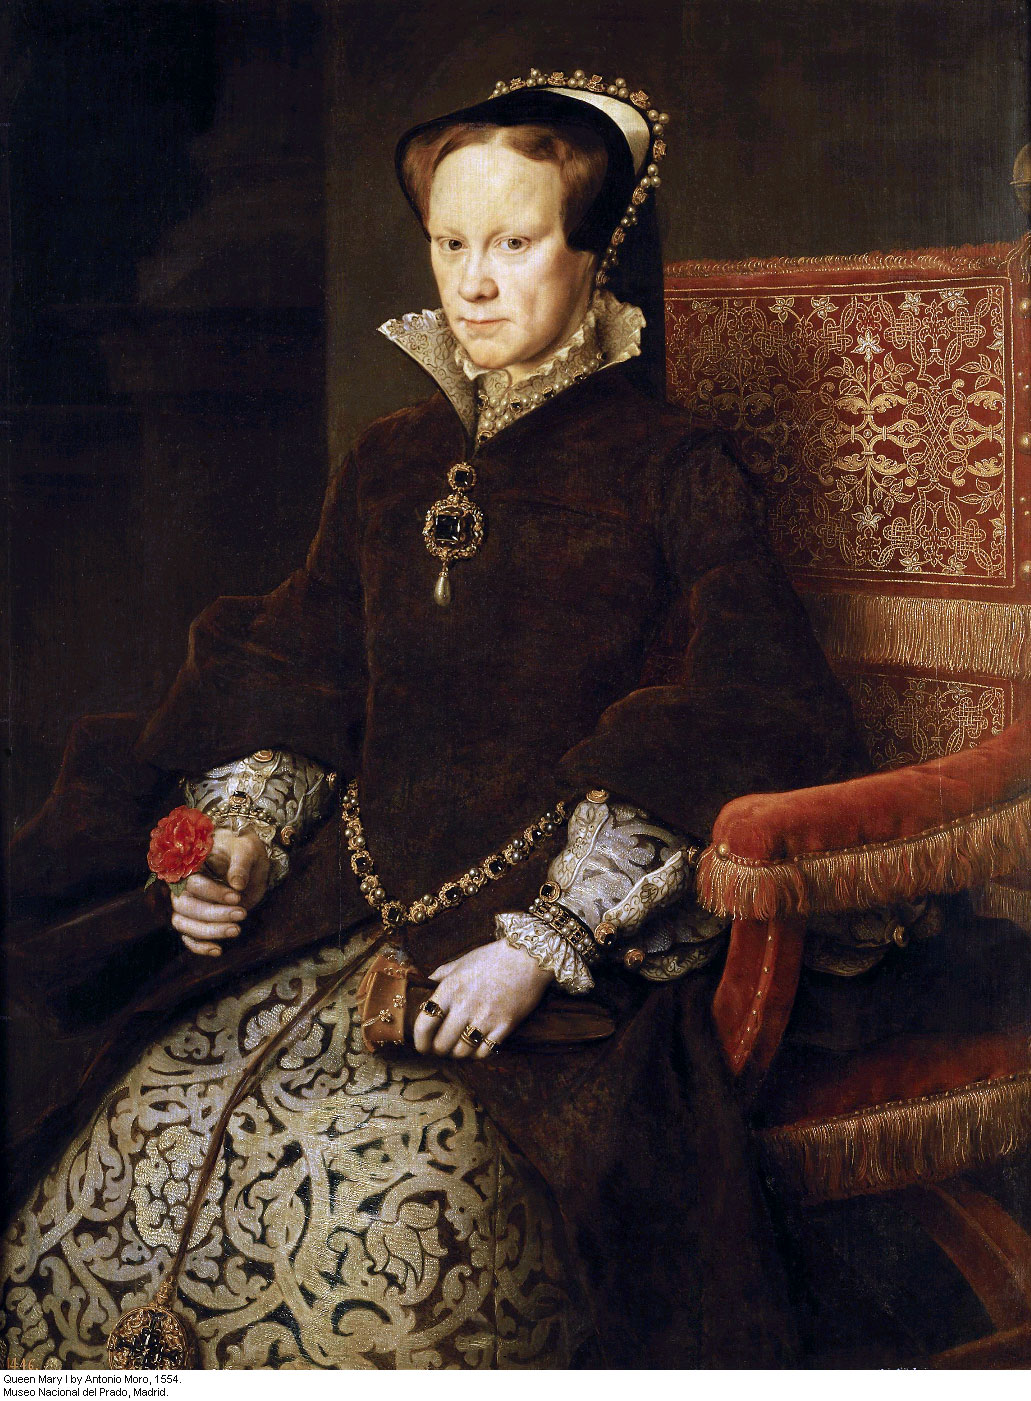 Portrait of Queen Mary I Tudor by Antonio Moro (Anthonis Mor), 1554.